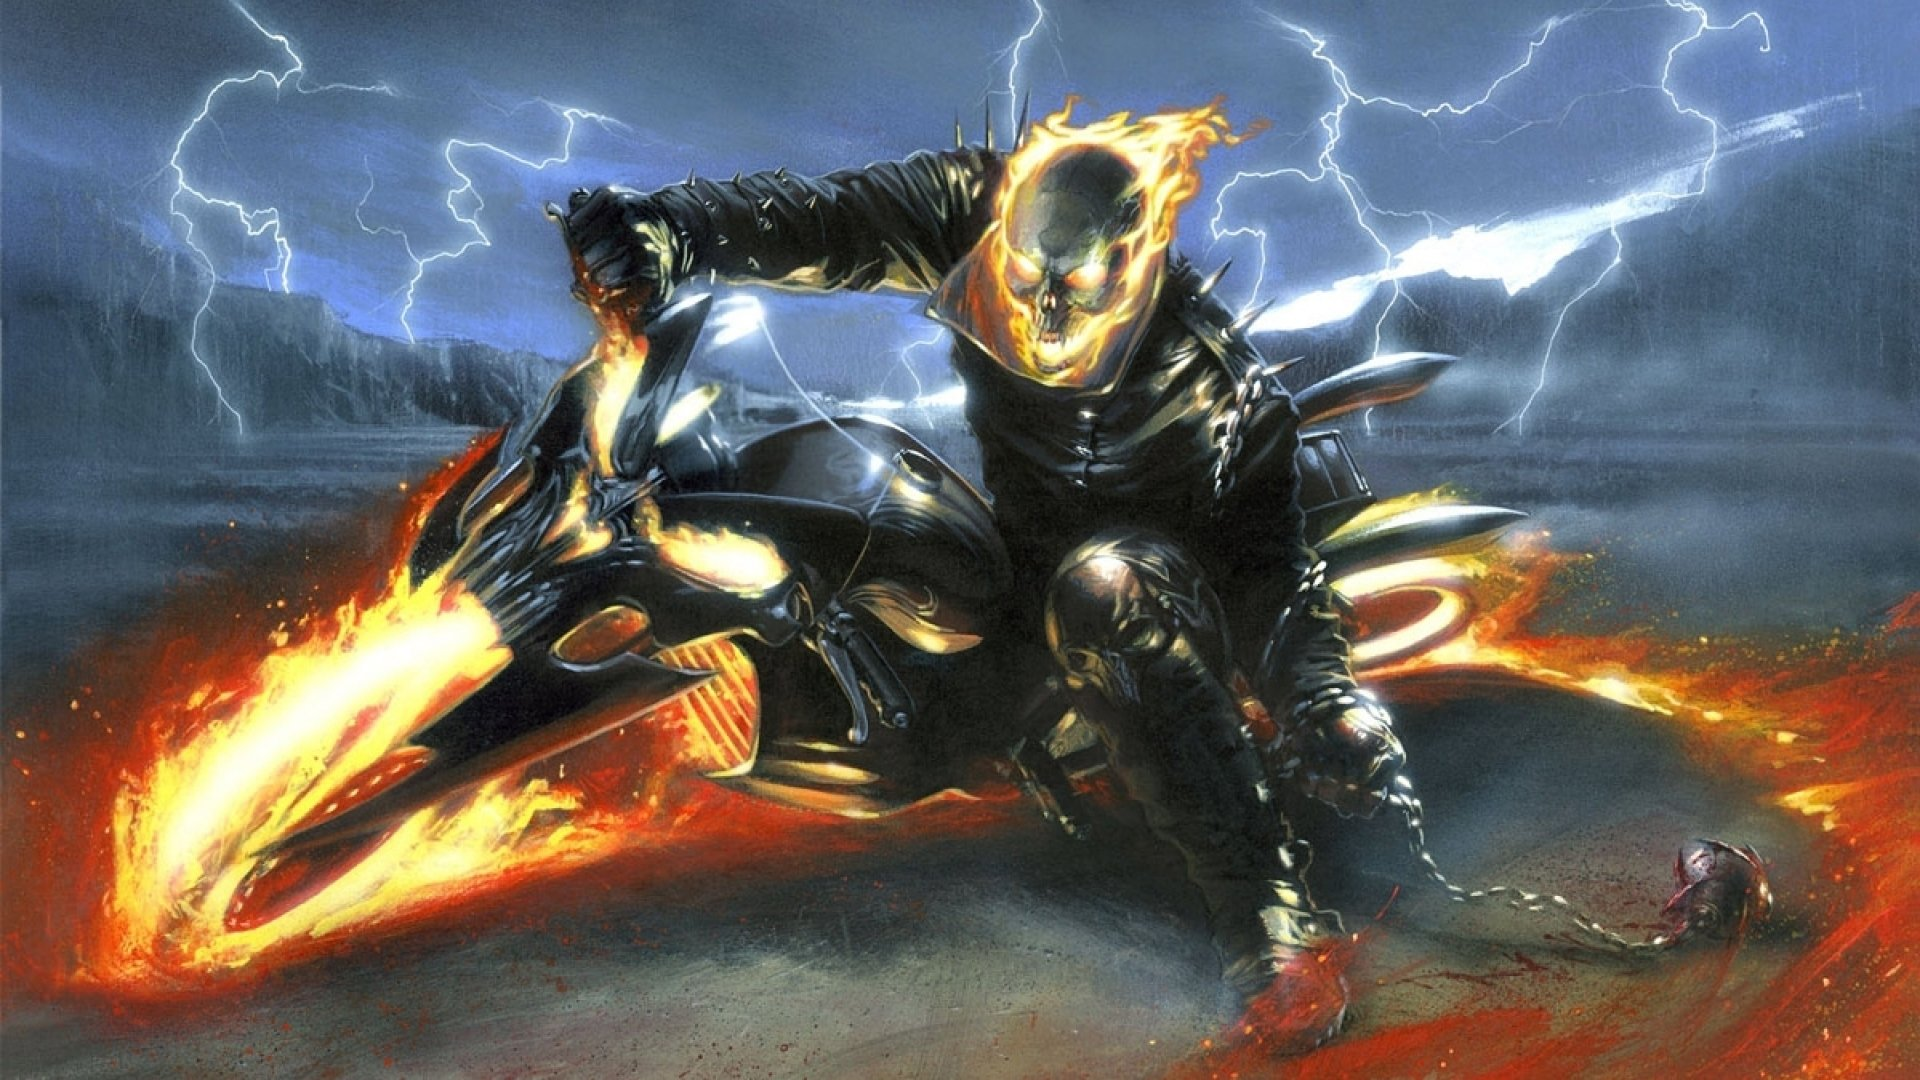 Ghost Rider HD Wallpaper   Background Image   1920x1080 ...